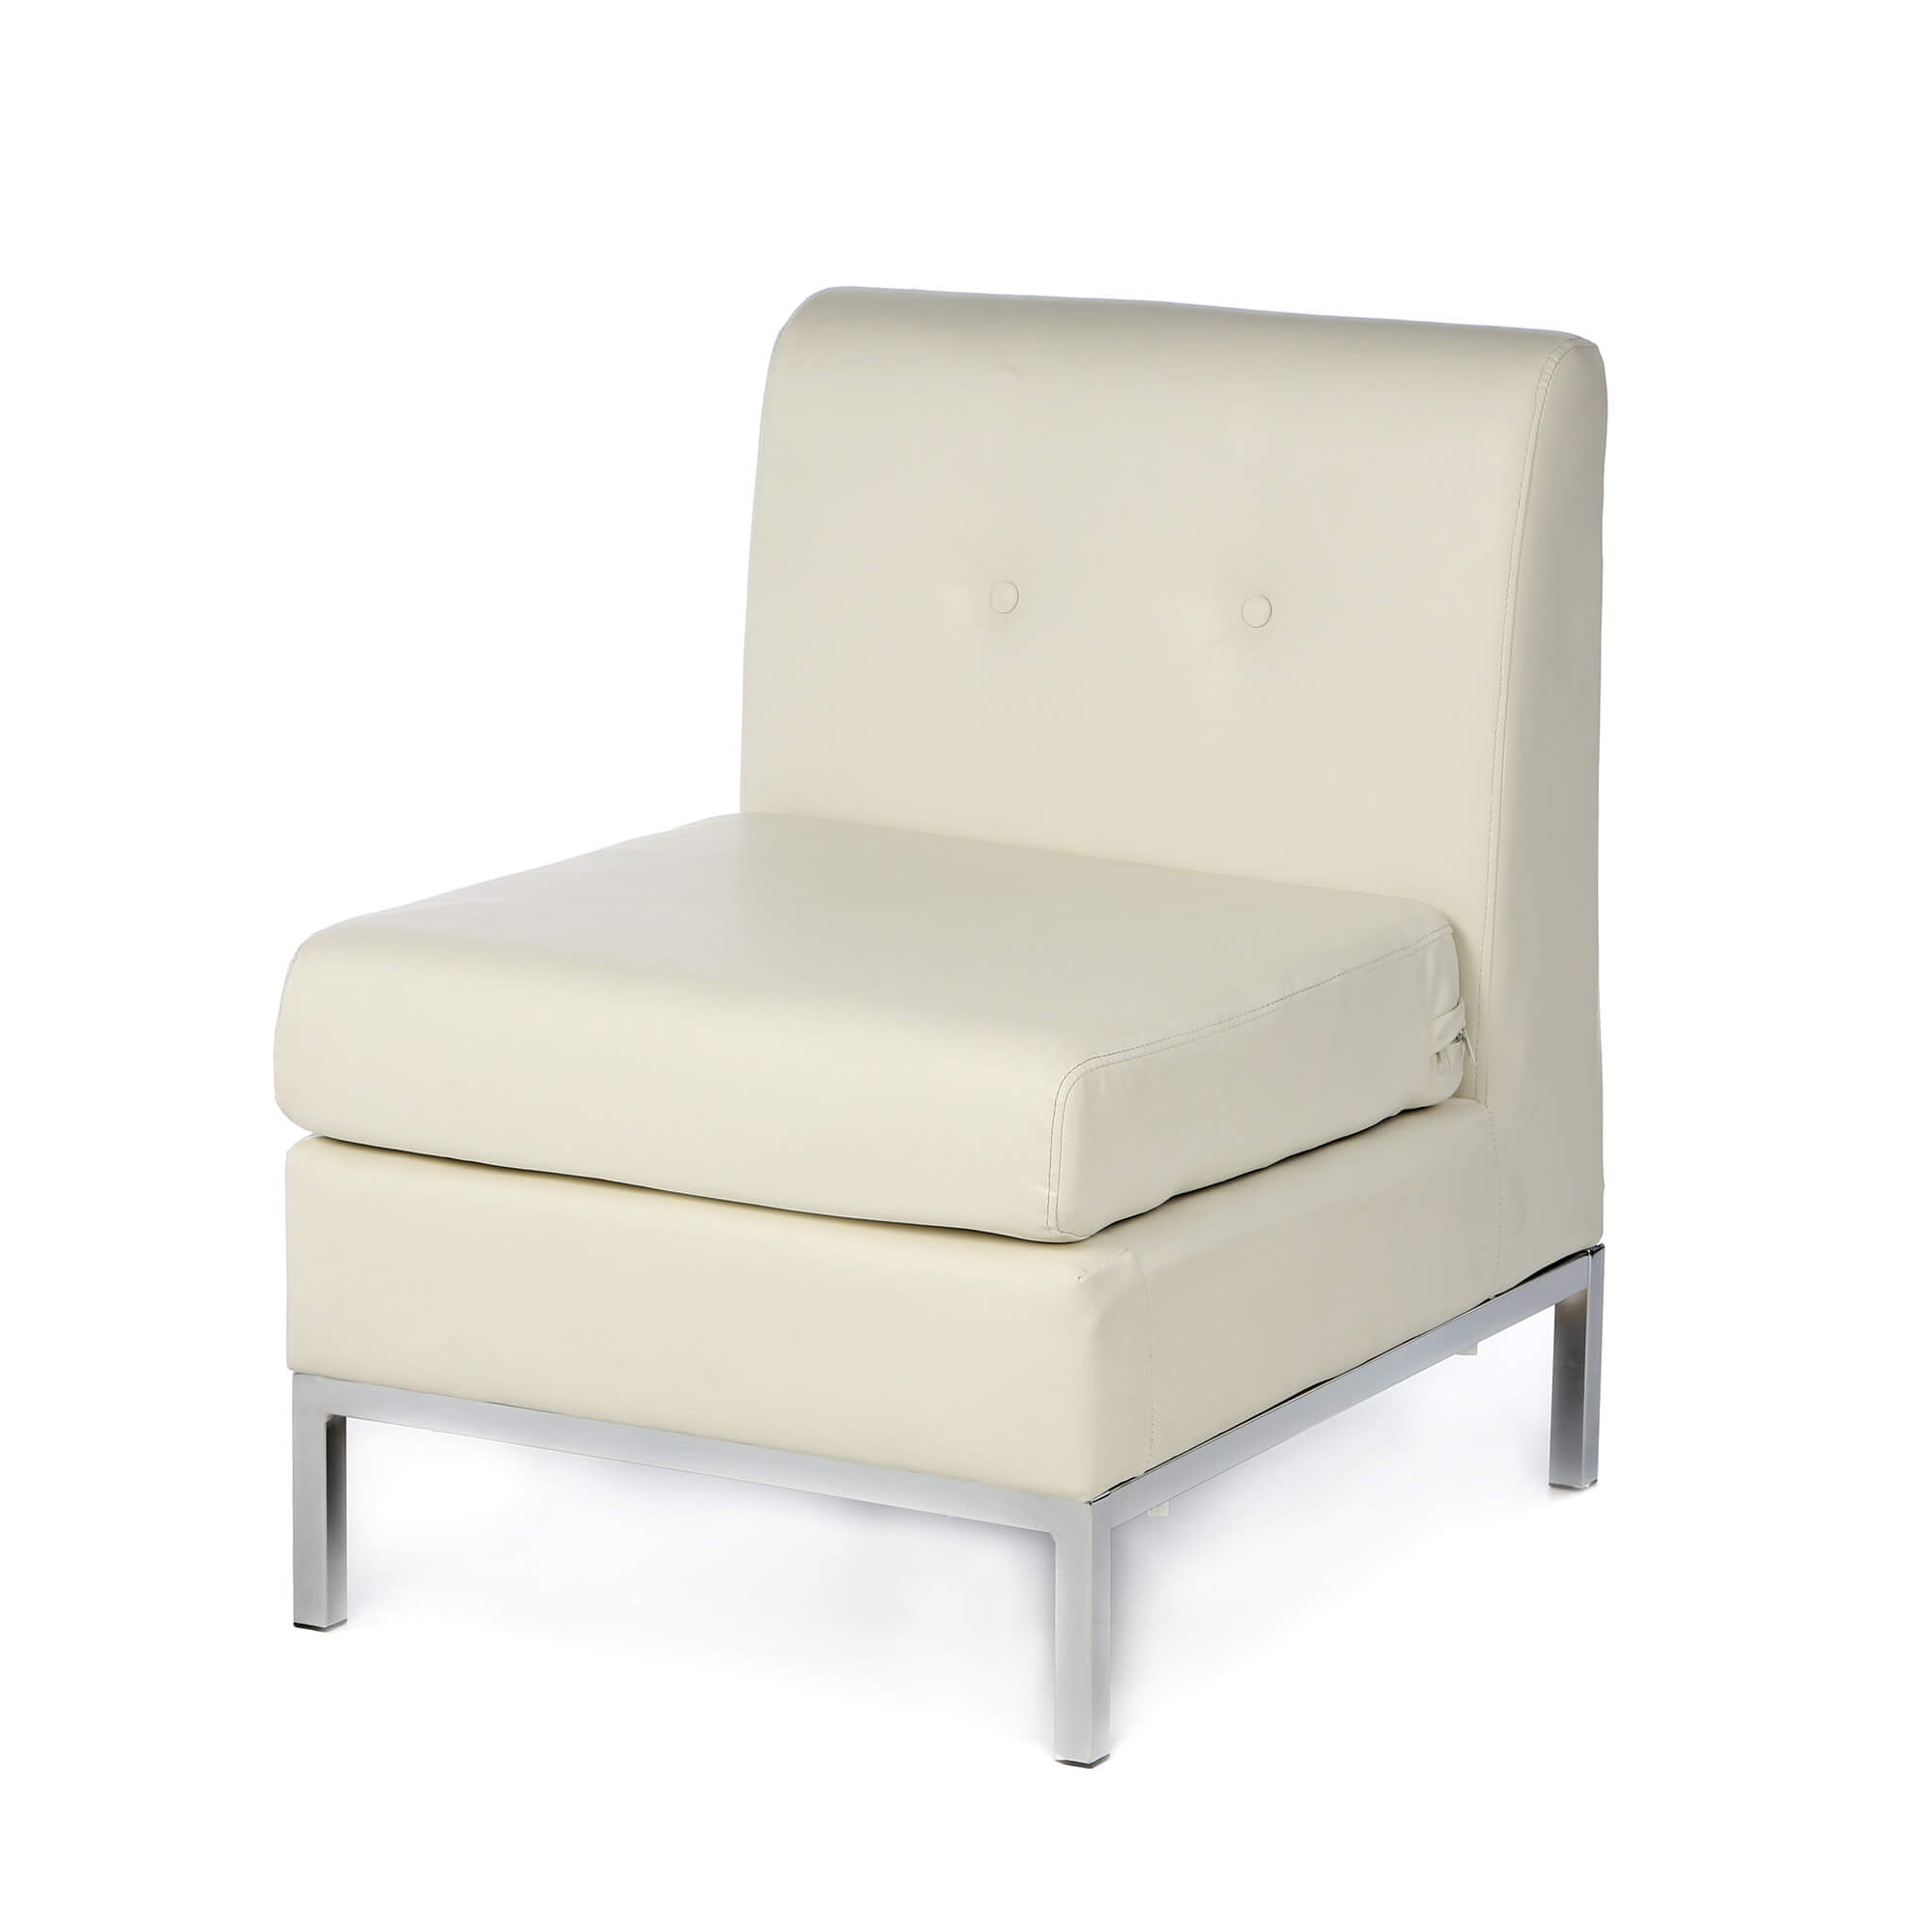 Classically simple club chair from Castleton Home in tufted white faux leather cushion over hardwood construction and chrome base.